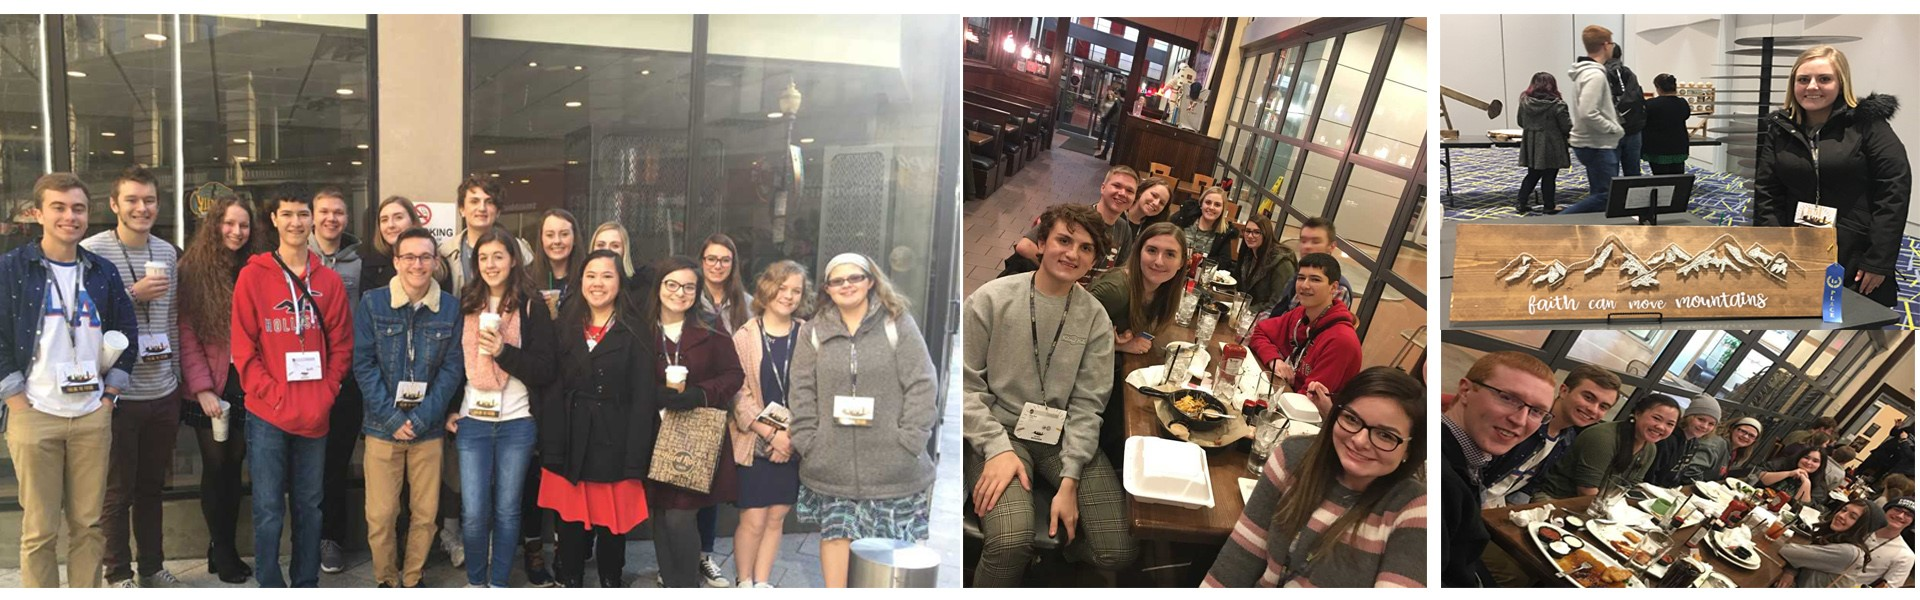 WCHS students attend Beta Conference!